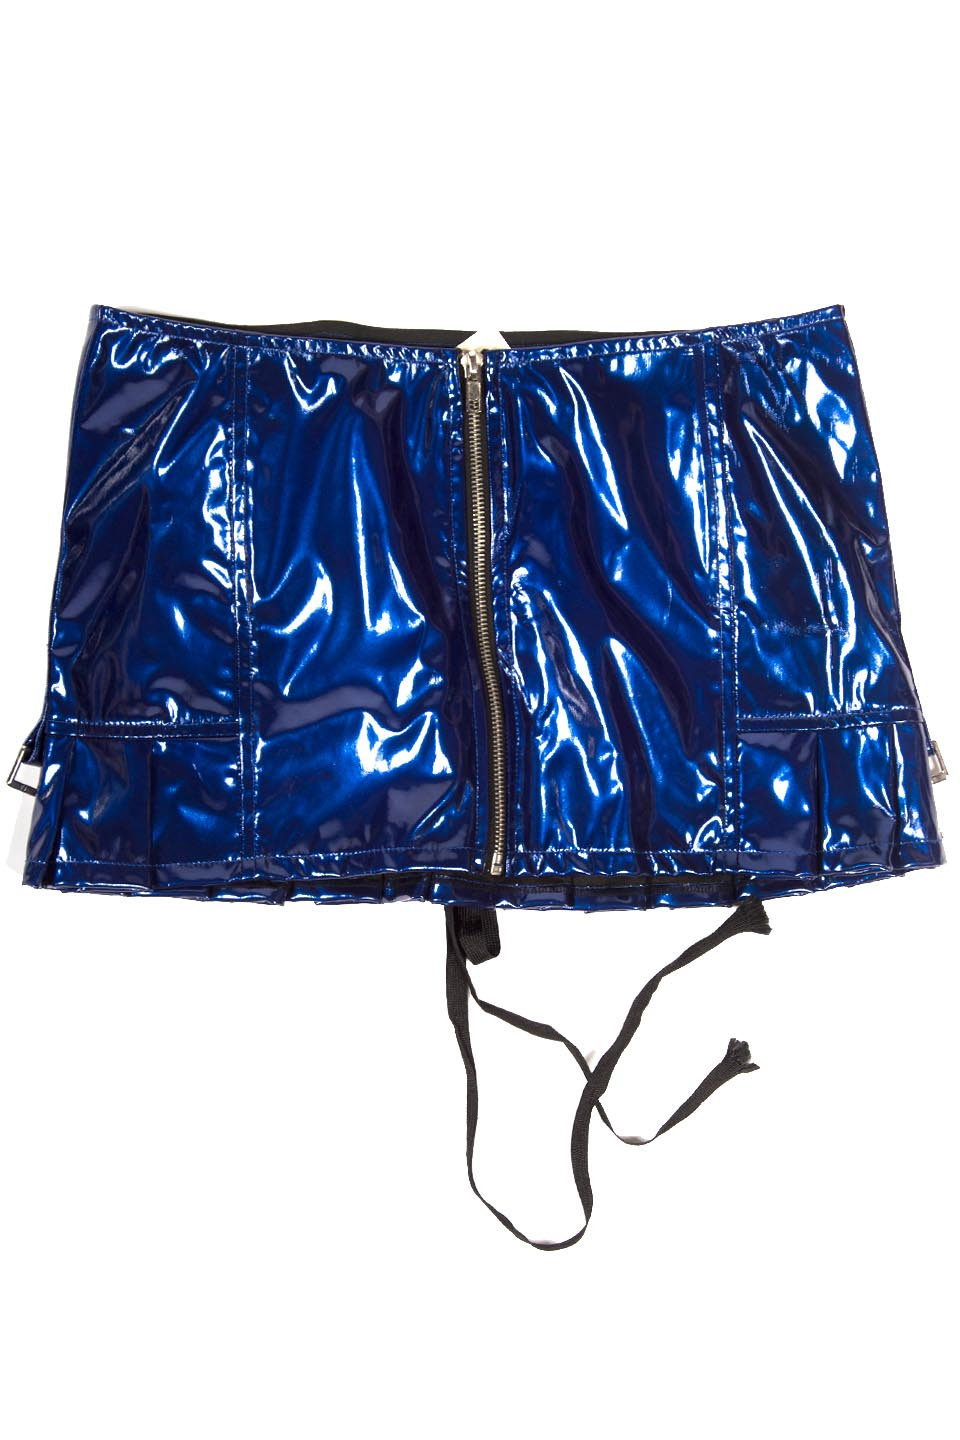 Vintage Vice PVC Mini-Skirts-Lip Service